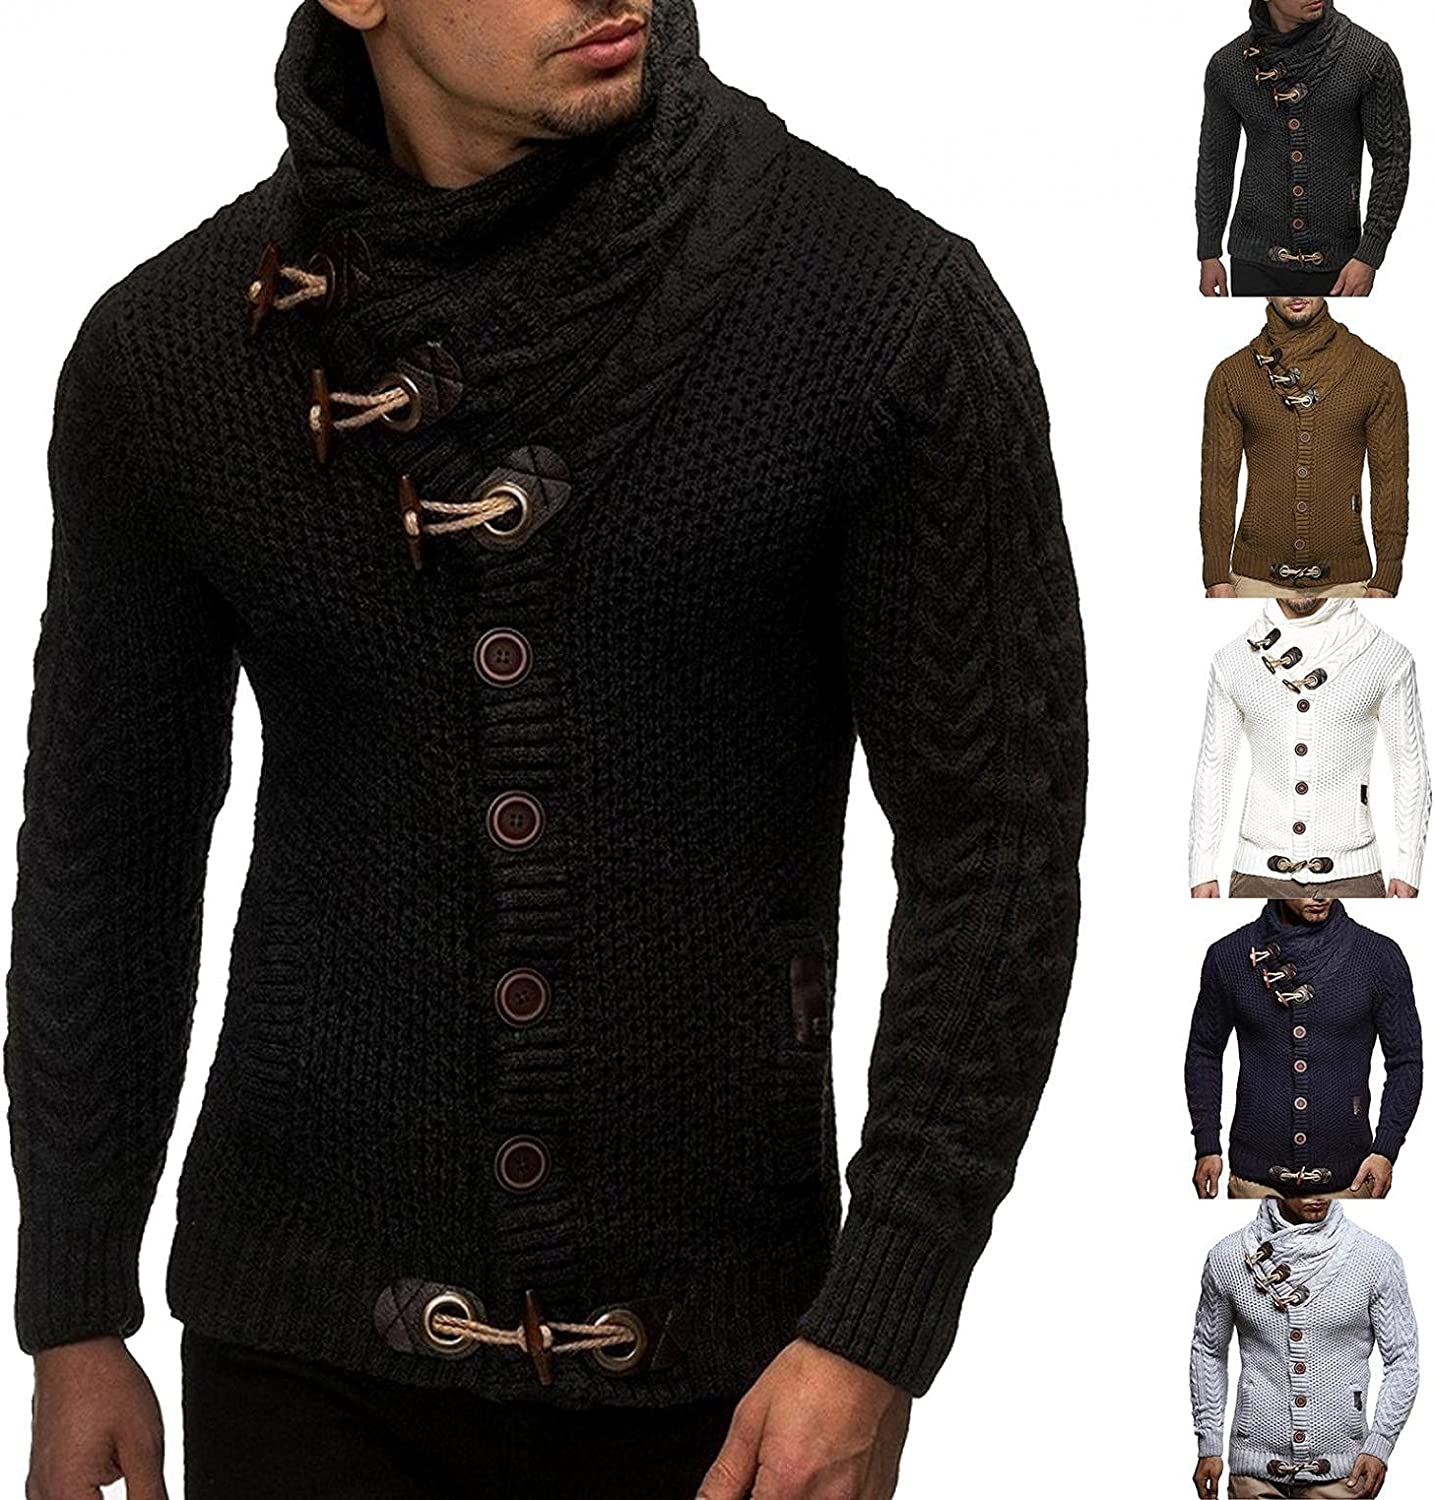 Hoodies for Men Pullover Solid Color Men's Athletic Sweatshirt Button Long Sleeve Tops Knitted Sweater Fall Winter Coats